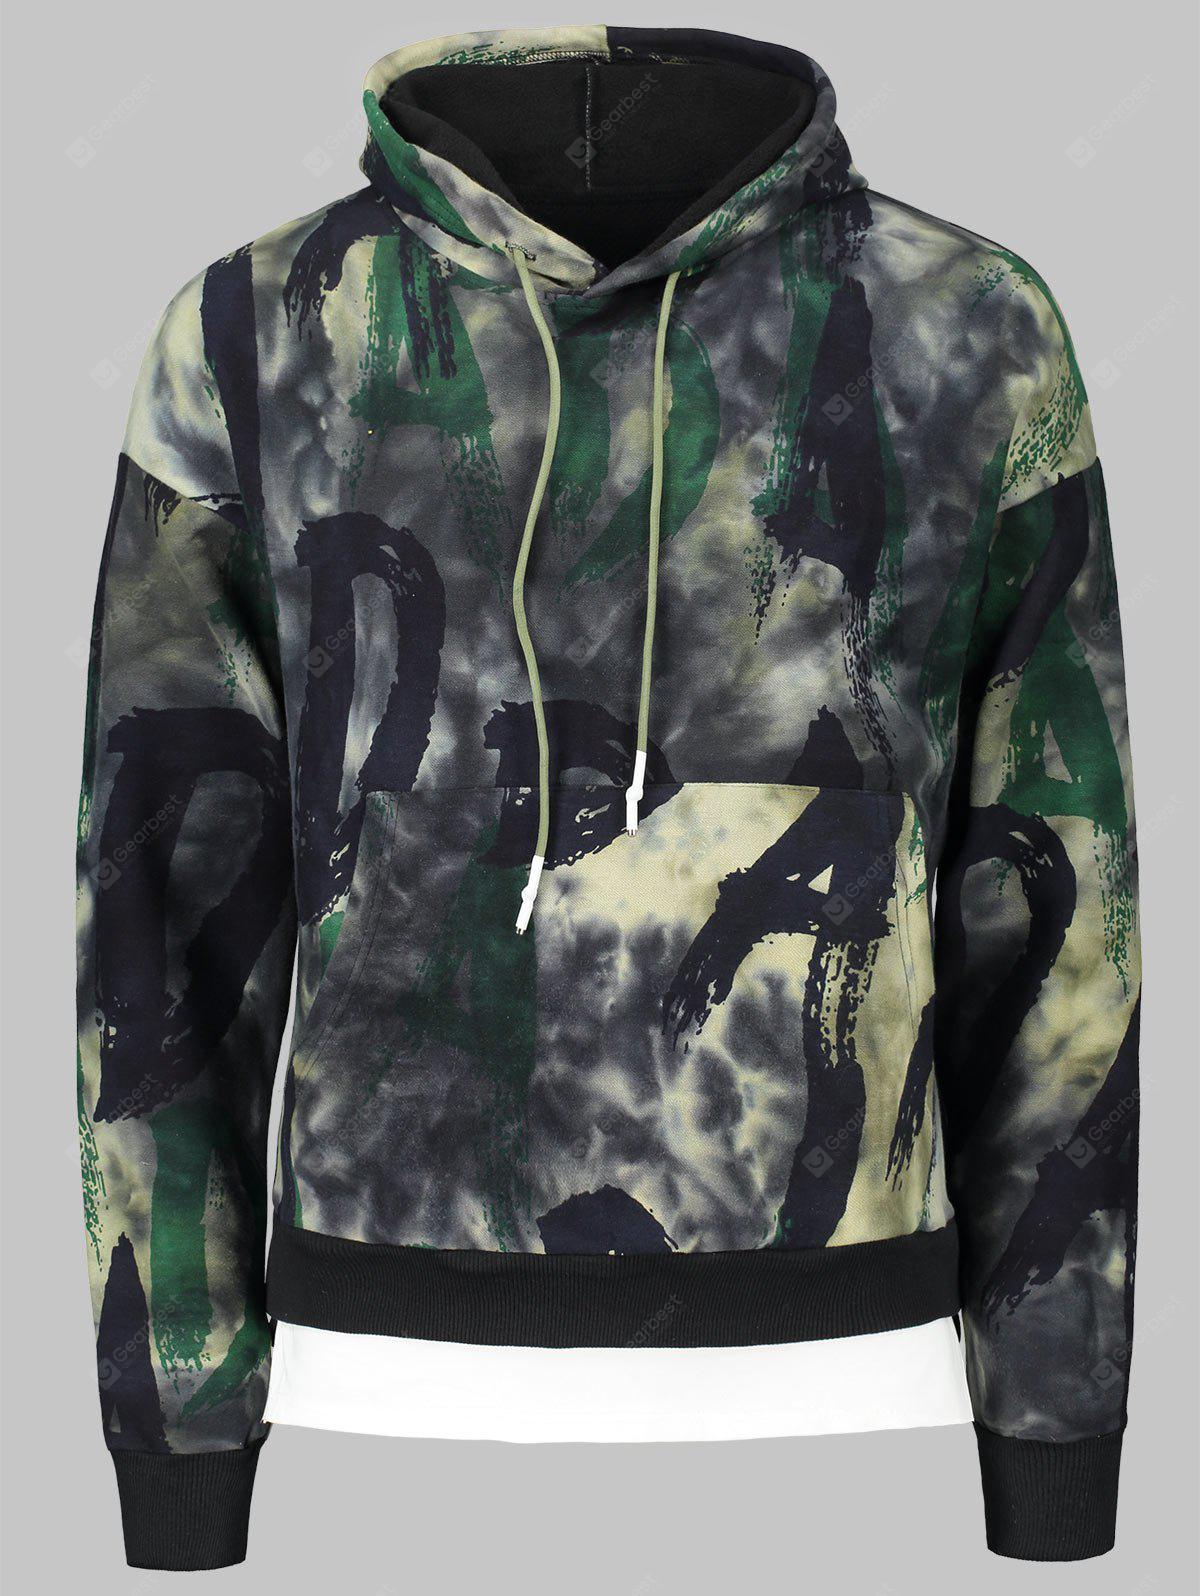 Letters and Tie Dyed Print Hoodie with Drawstring